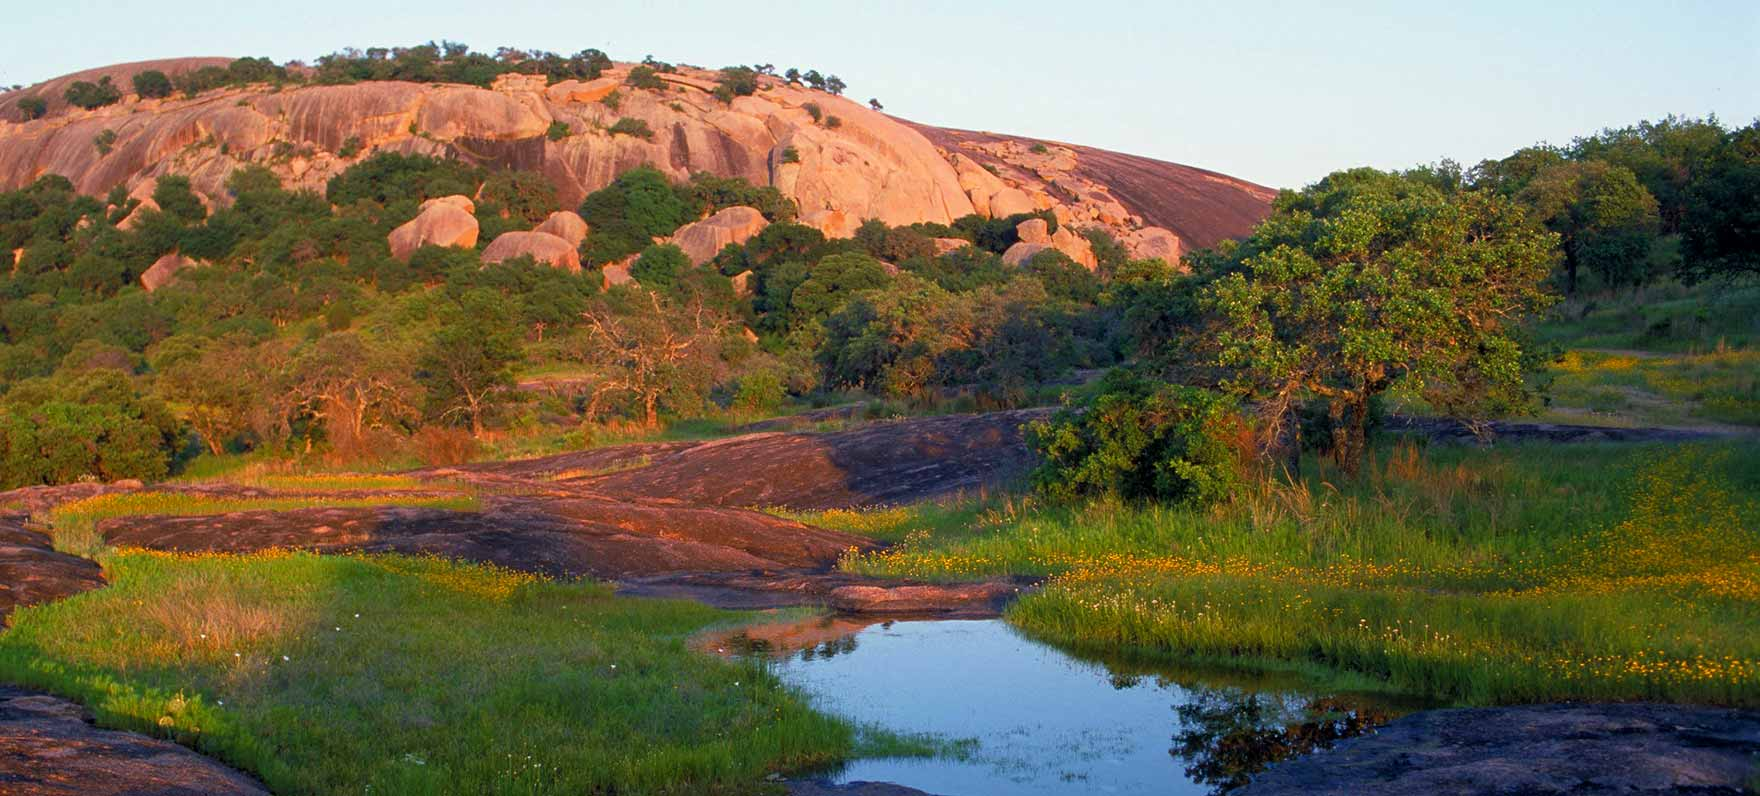 Enchanted Rock State Natural Area